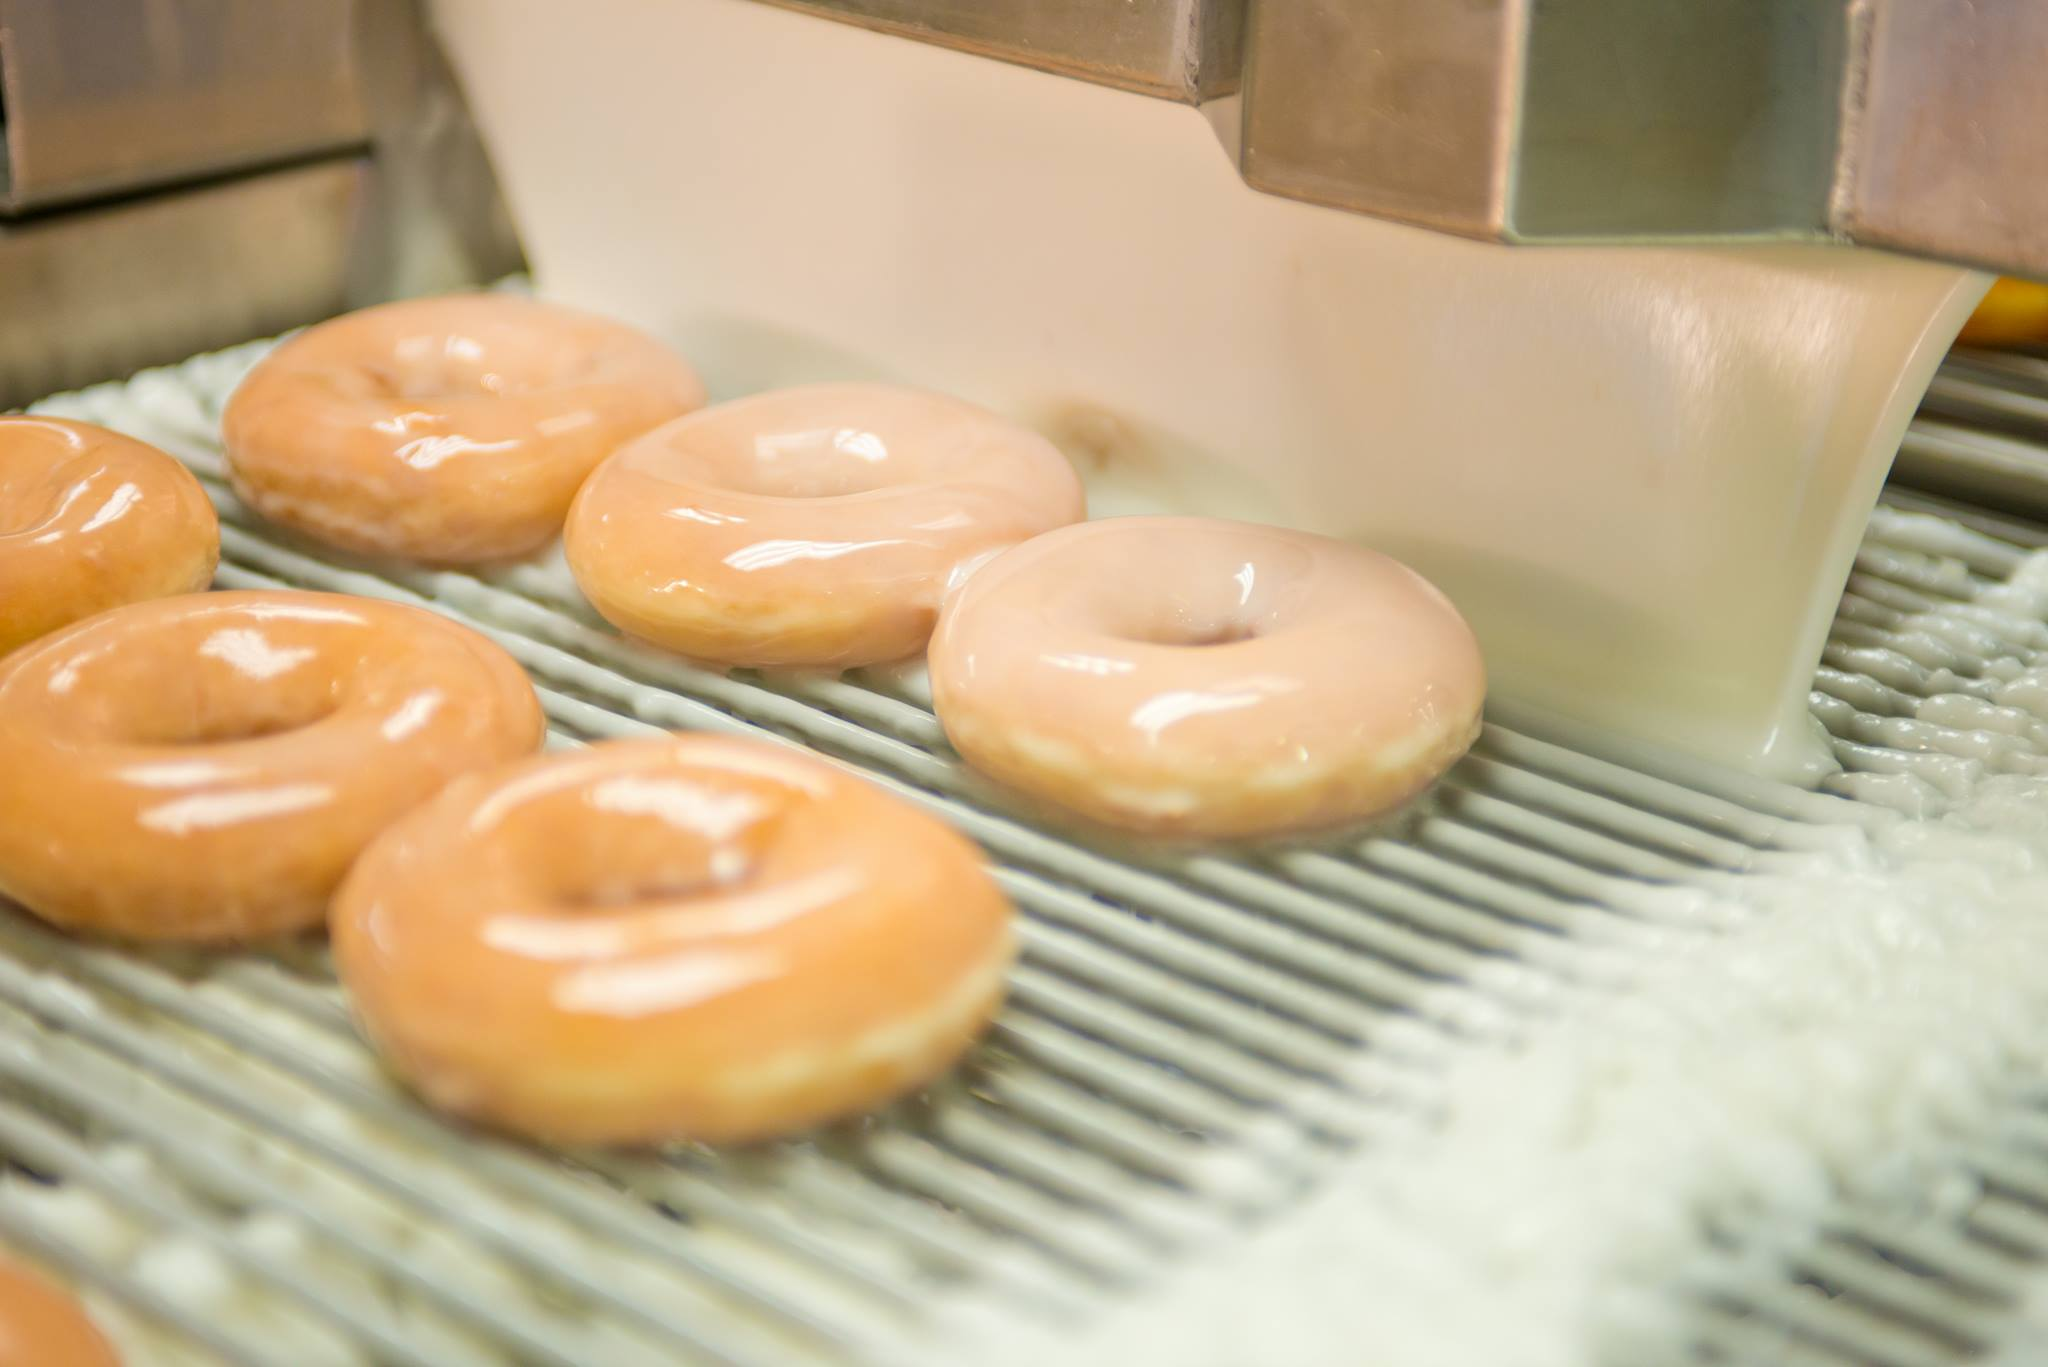 Krispy Kreme is opening 50 new locations in Ontario and Quebec